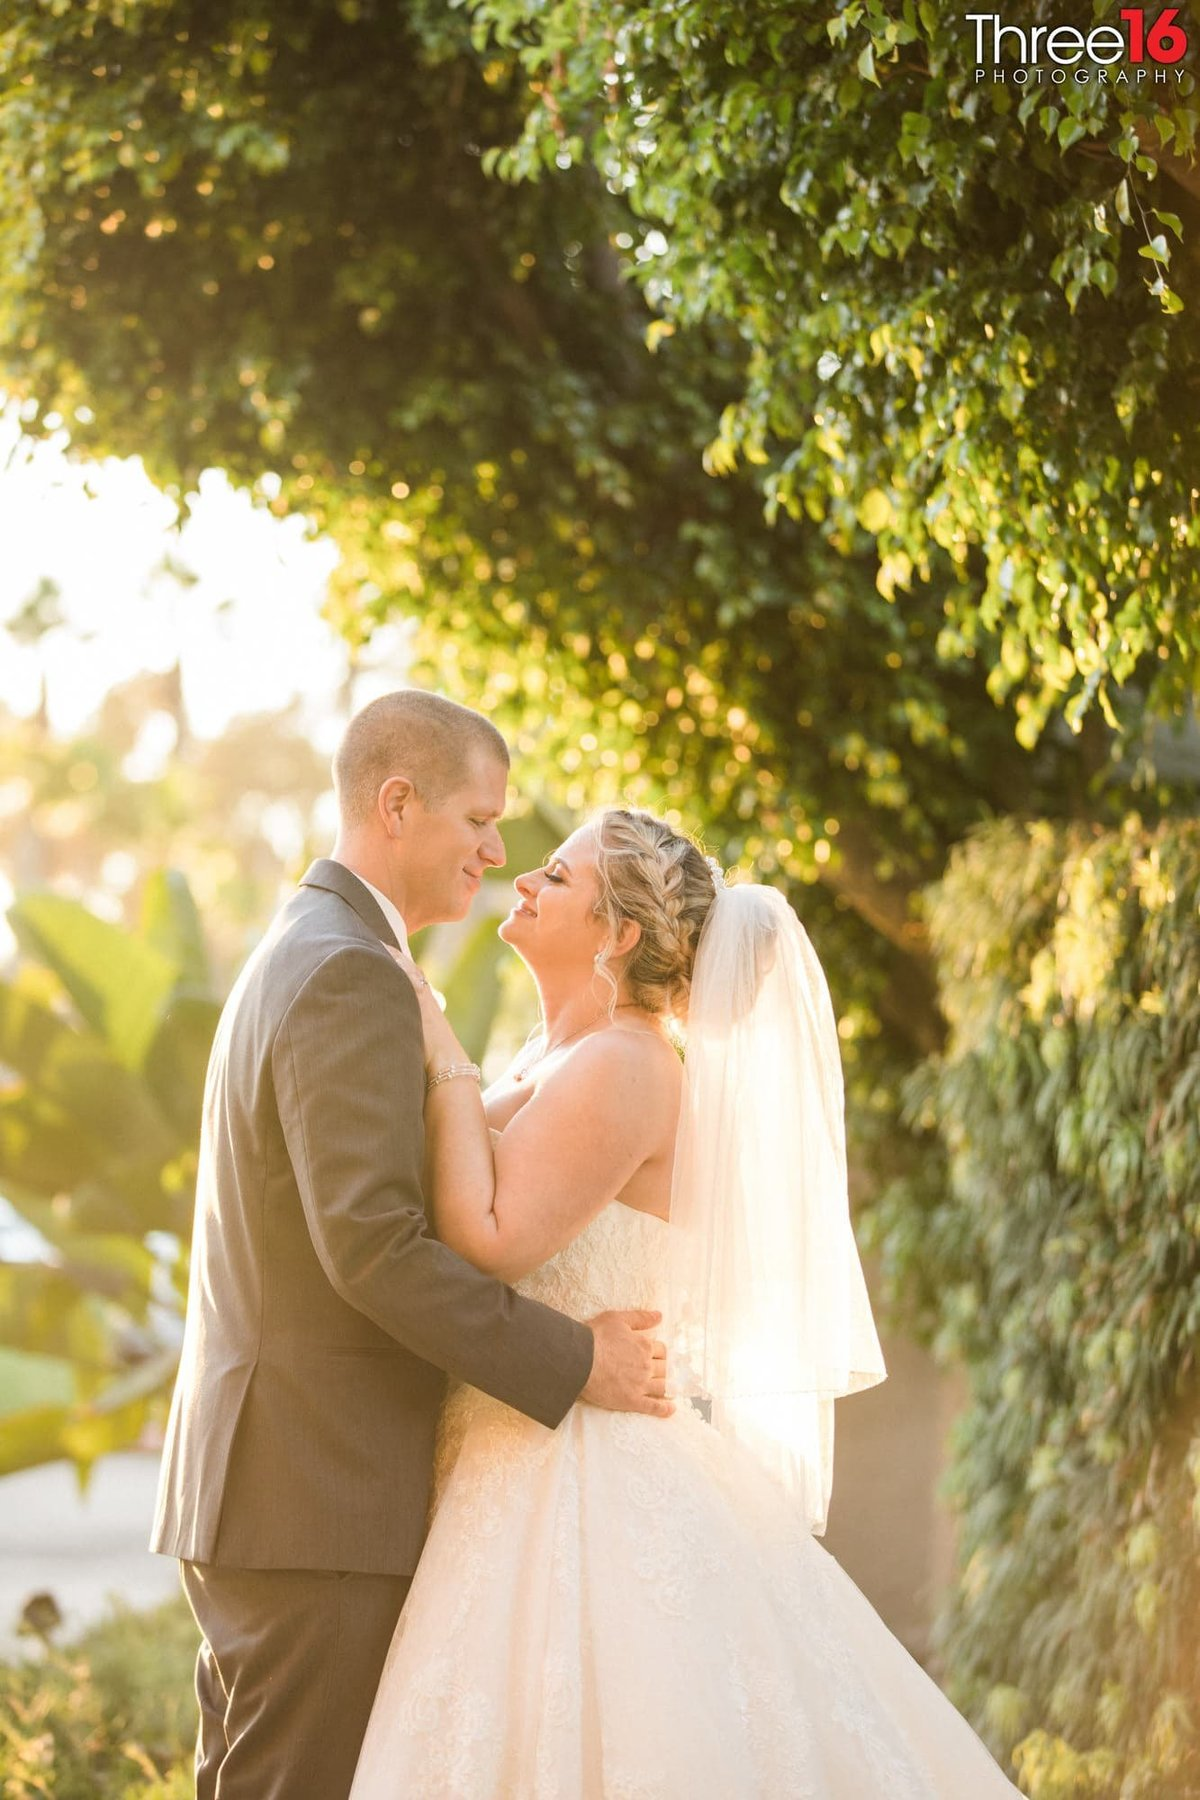 Bride and Groom share intimate moment under a tree